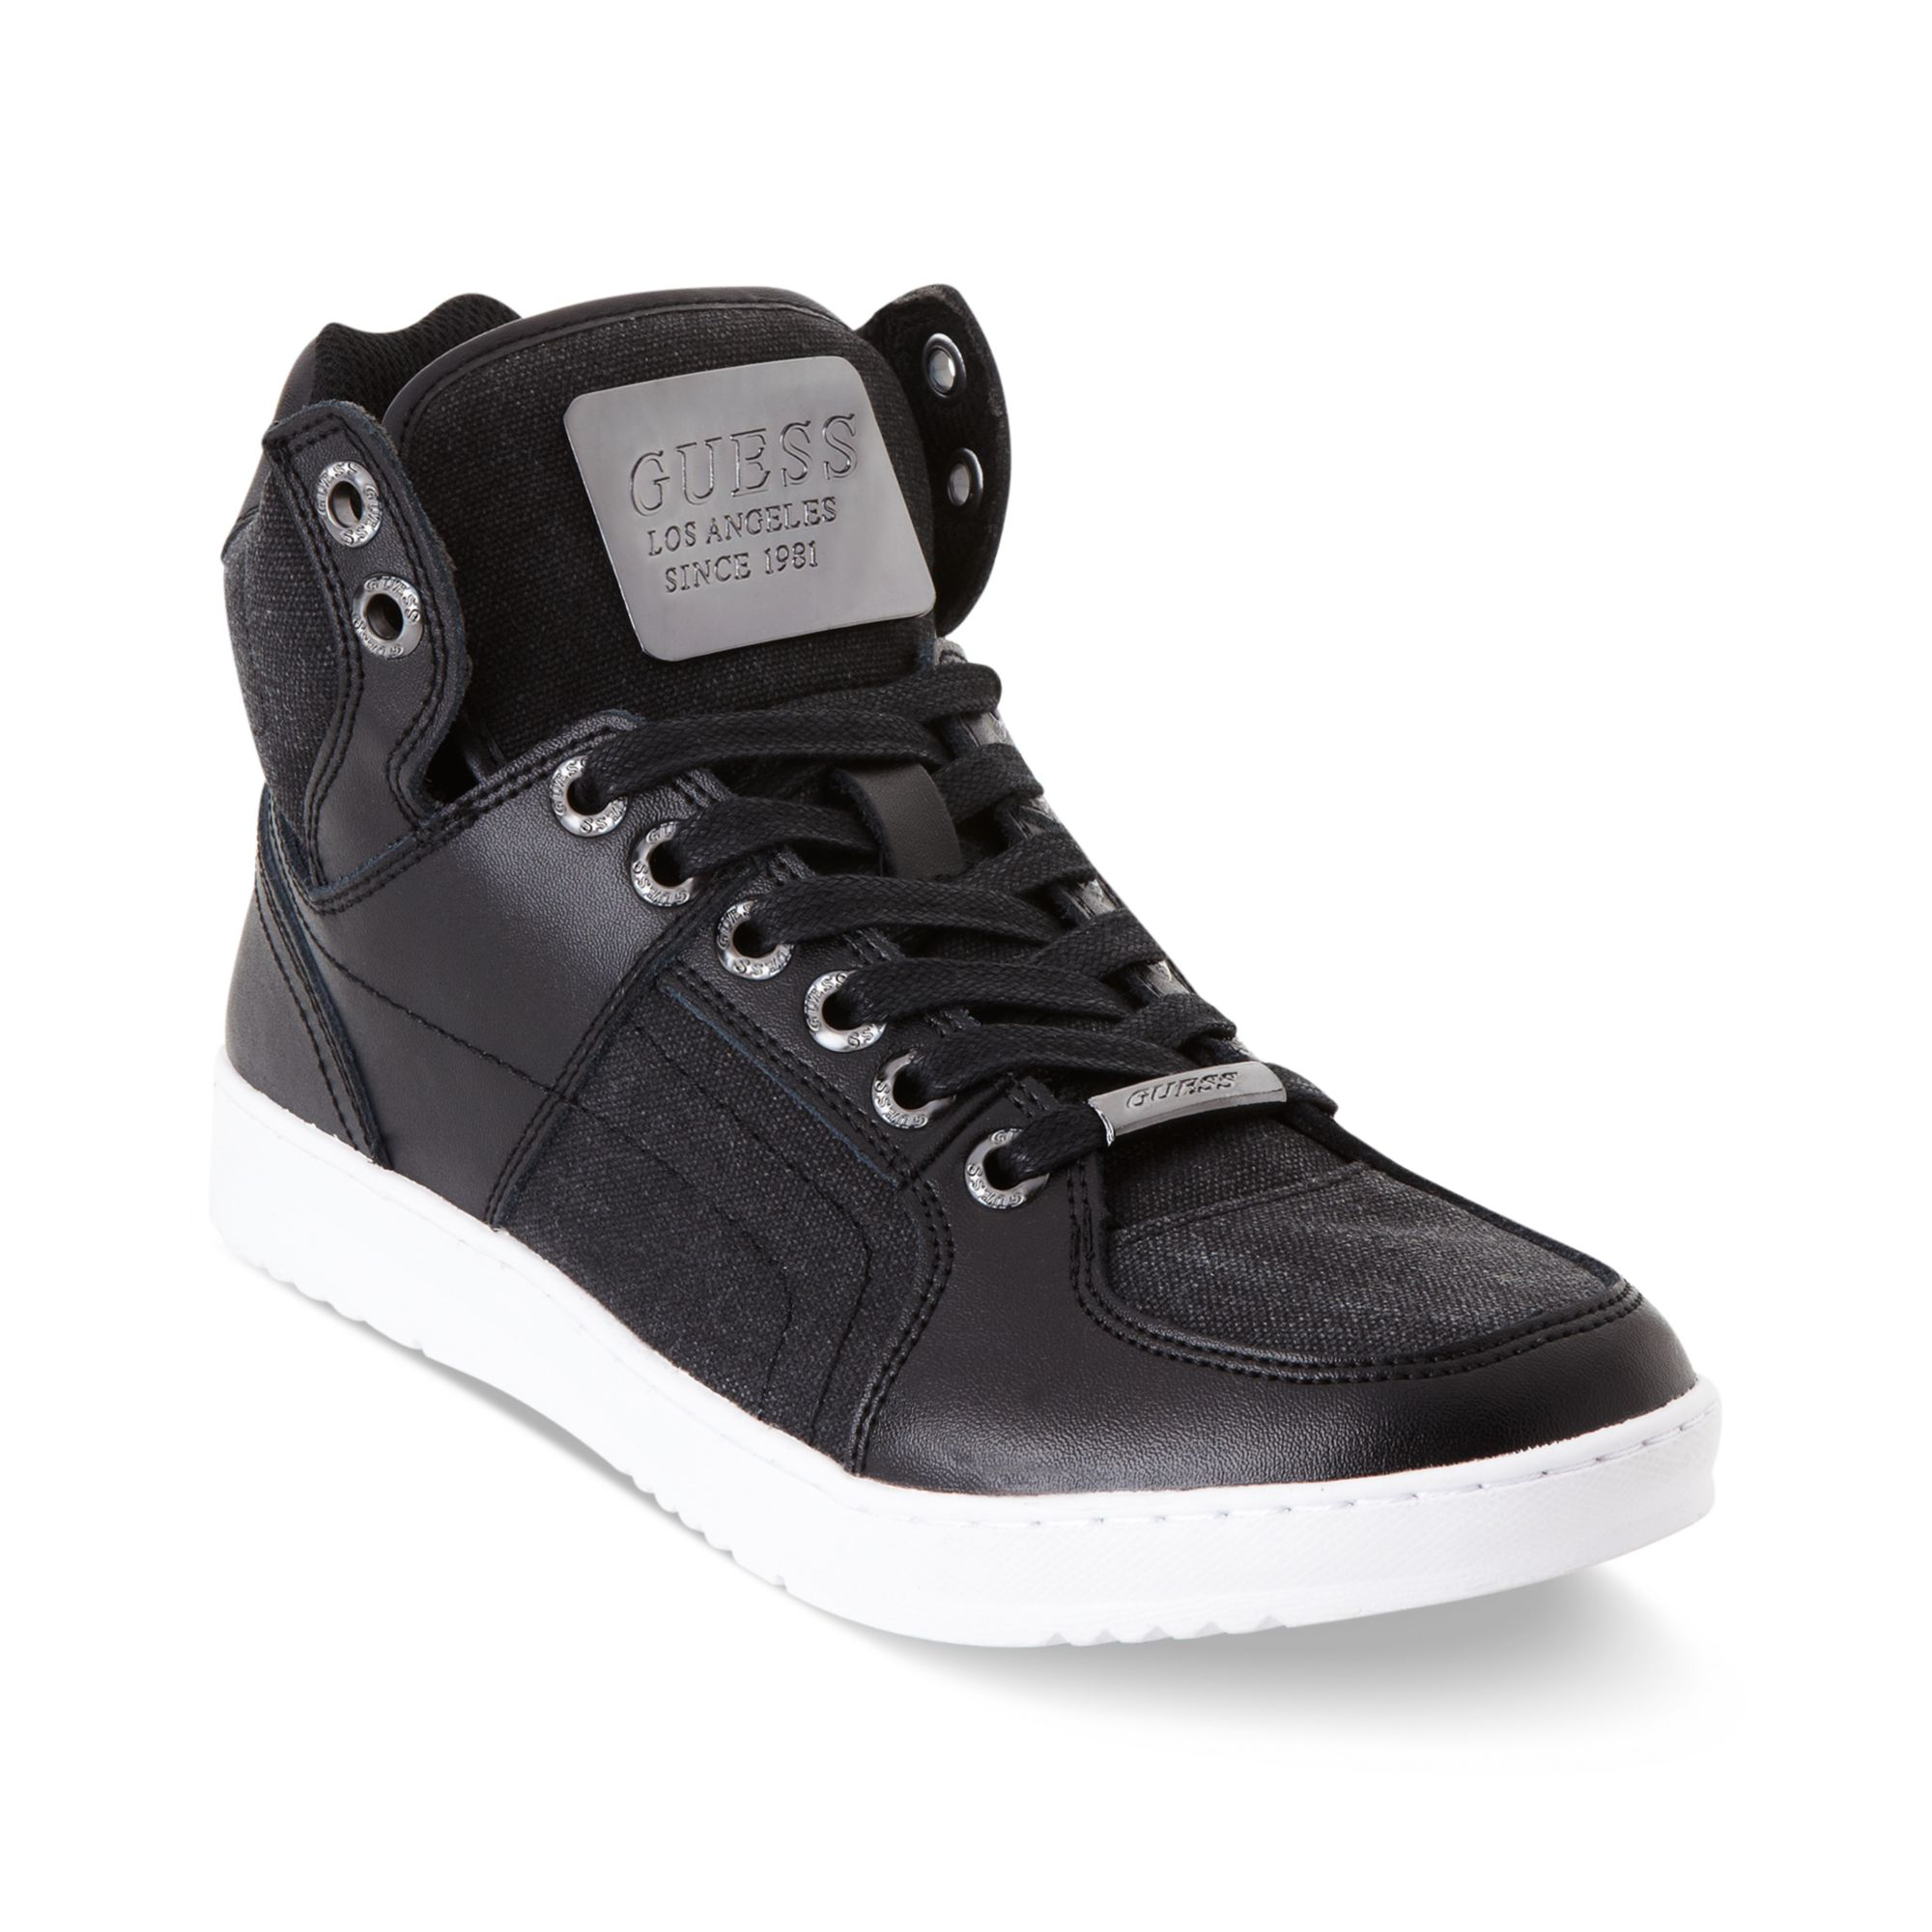 Guess Canvas Trippy High Top Sneakers